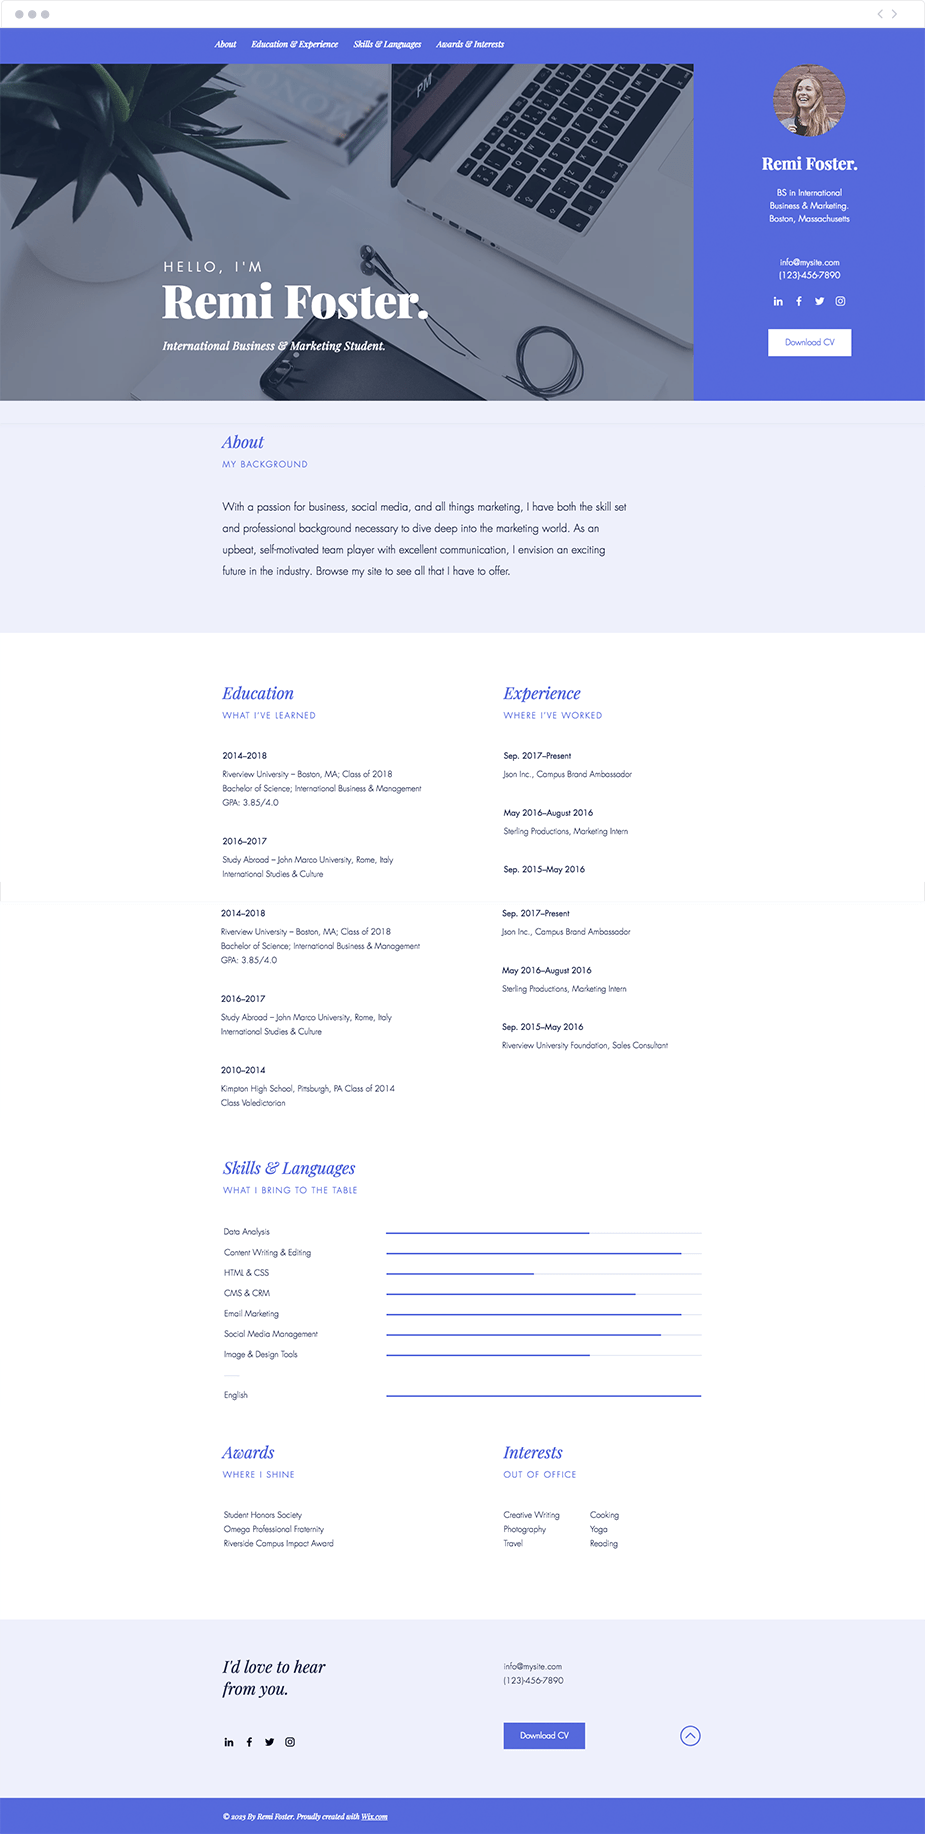 Student resume website template